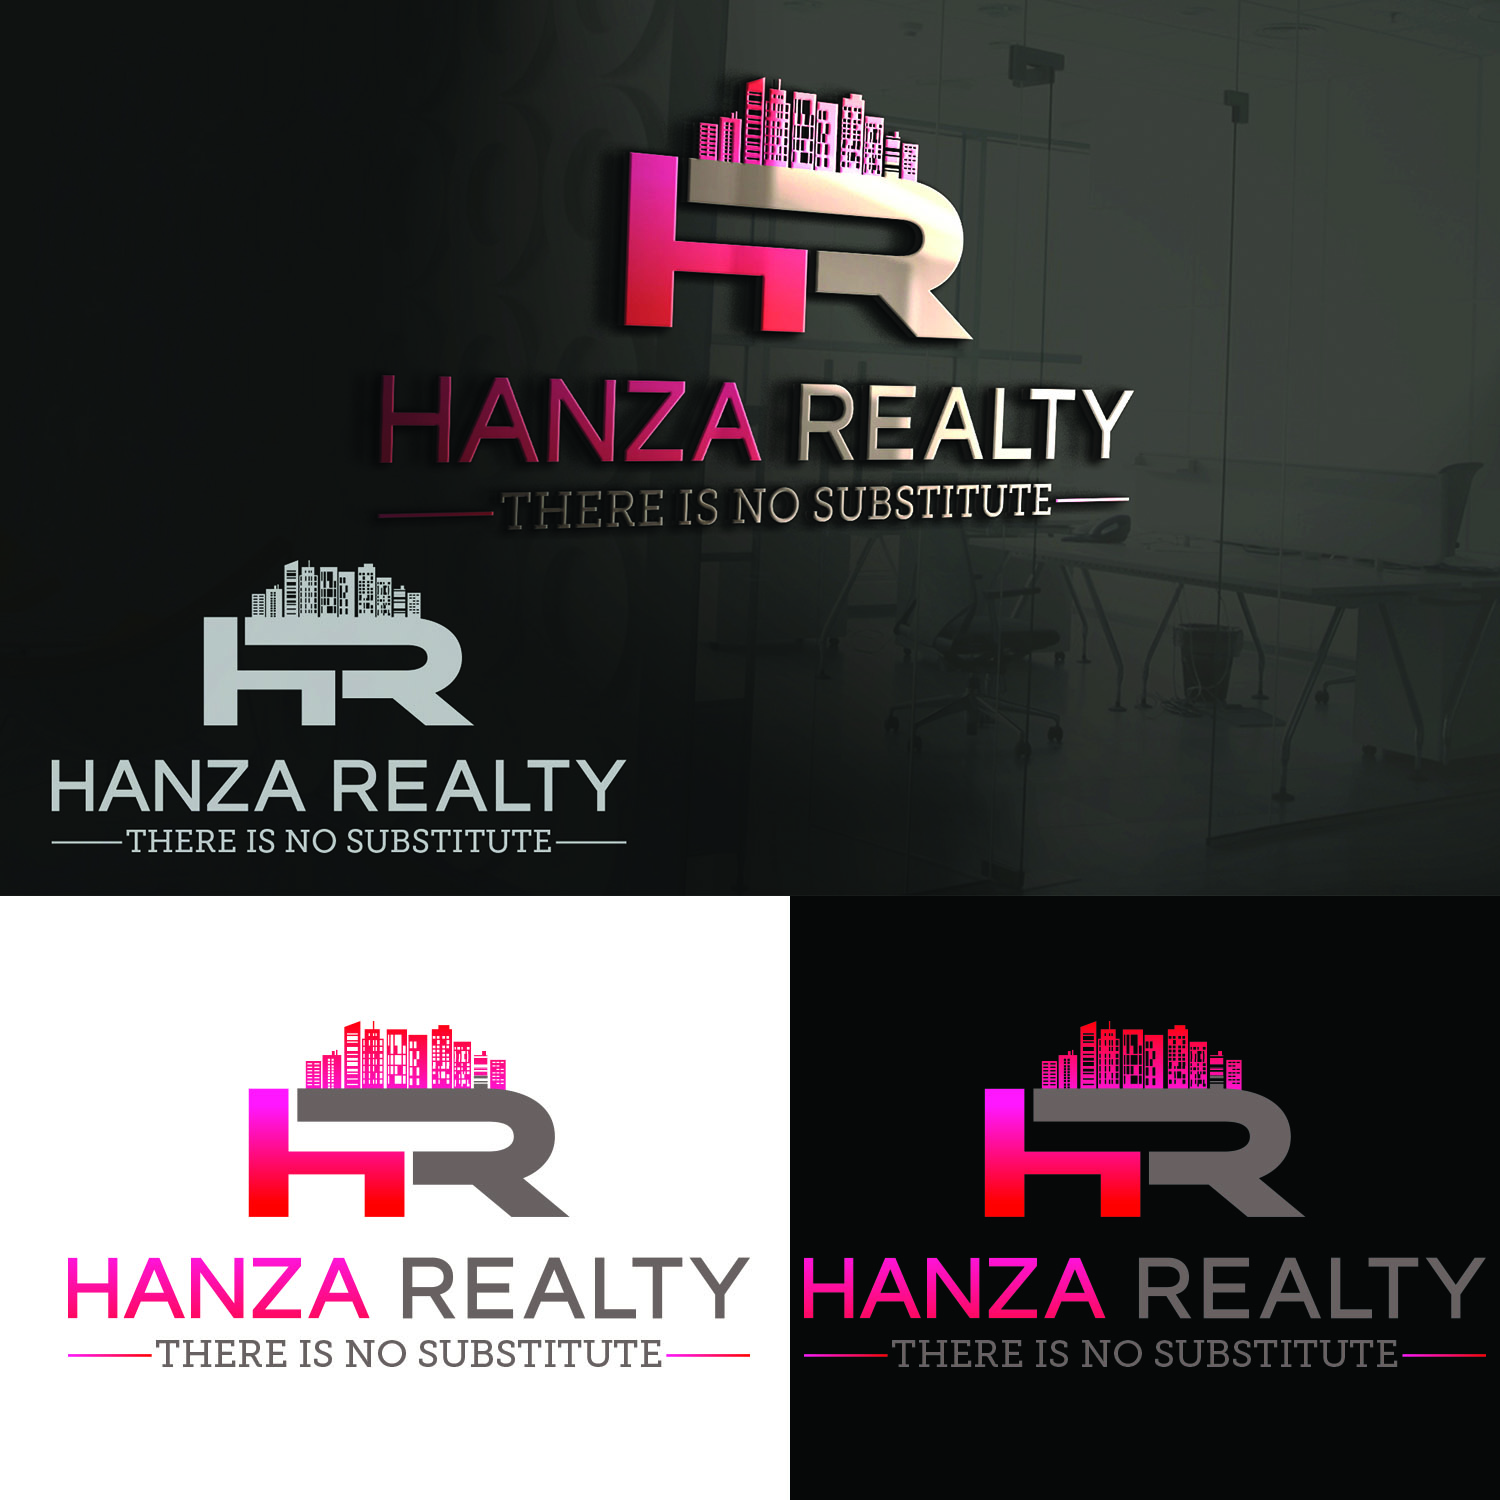 Logo Design by Umair ahmed Iqbal - Entry No. 315 in the Logo Design Contest Logo Design for Hanza Realty.